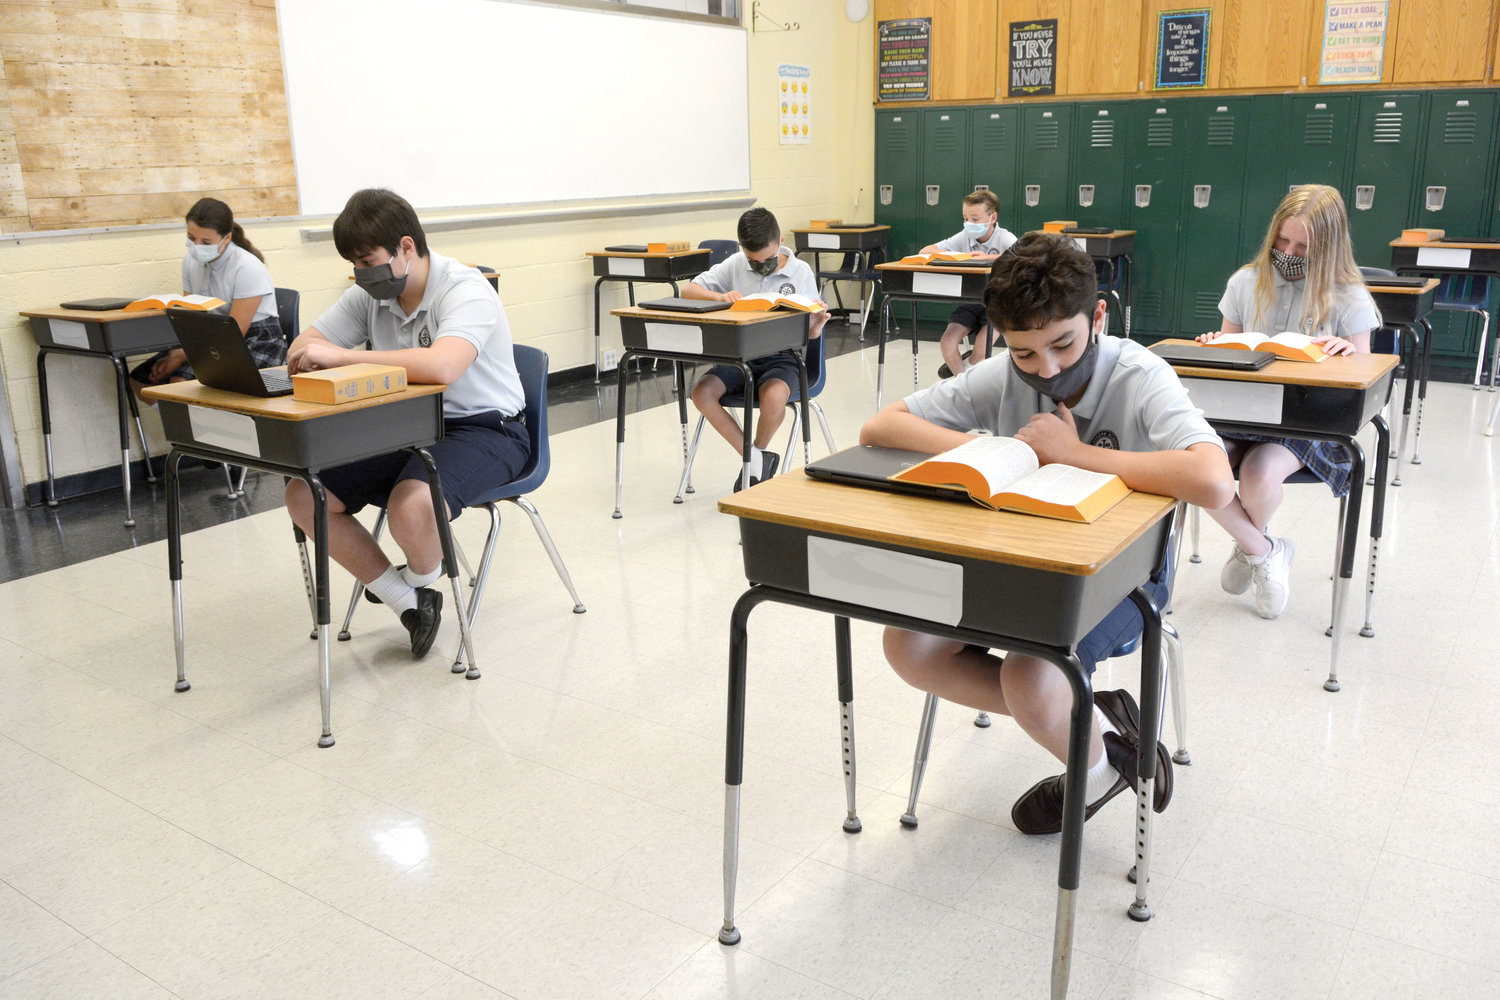 Some sixth-, seventh- and eighth-graders of St. Joseph School in Bronxville demonstrate Aug. 7 what a typical day inside a classroom will look like, with coronavirus protocols